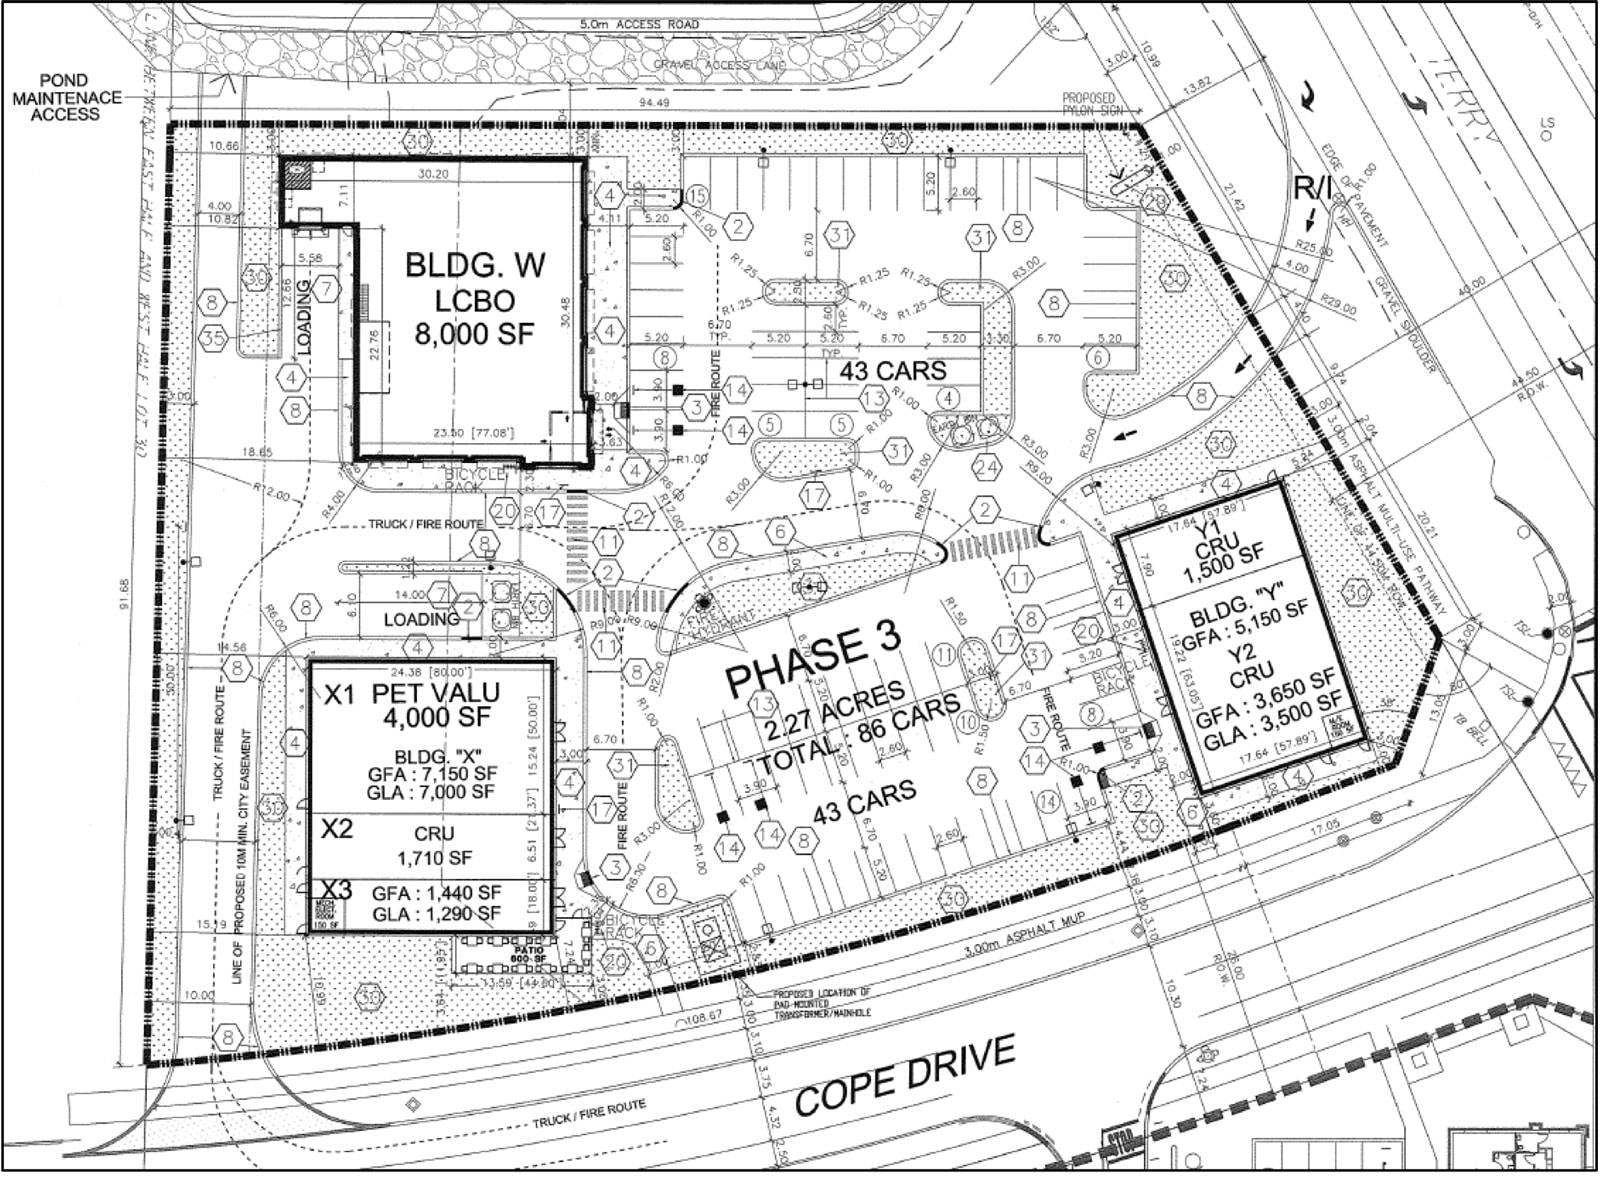 Proposed site plan for 1140 Terry Fox